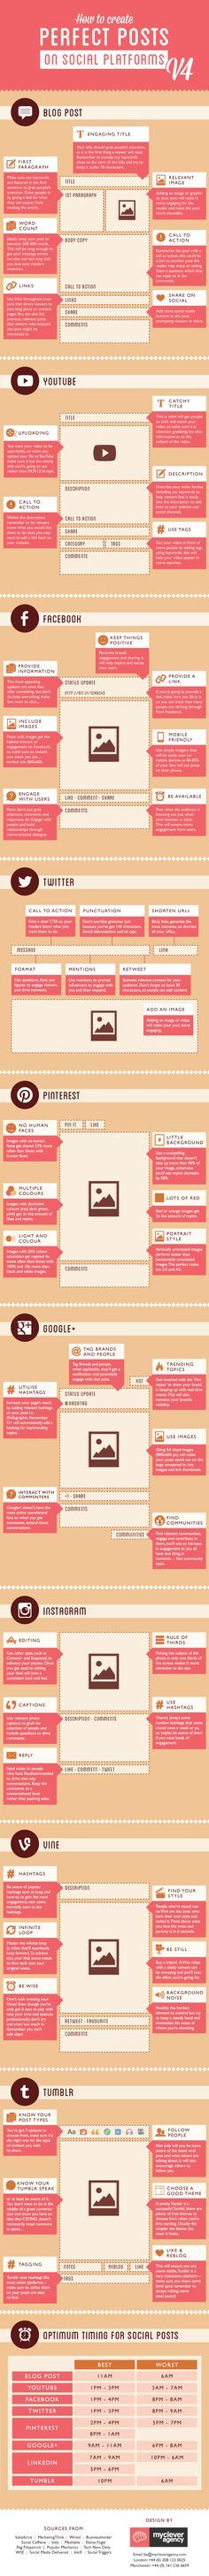 Want to know How to Create the Perfect Post on the Most Popular Social Platforms? #socialmedia #Infographic